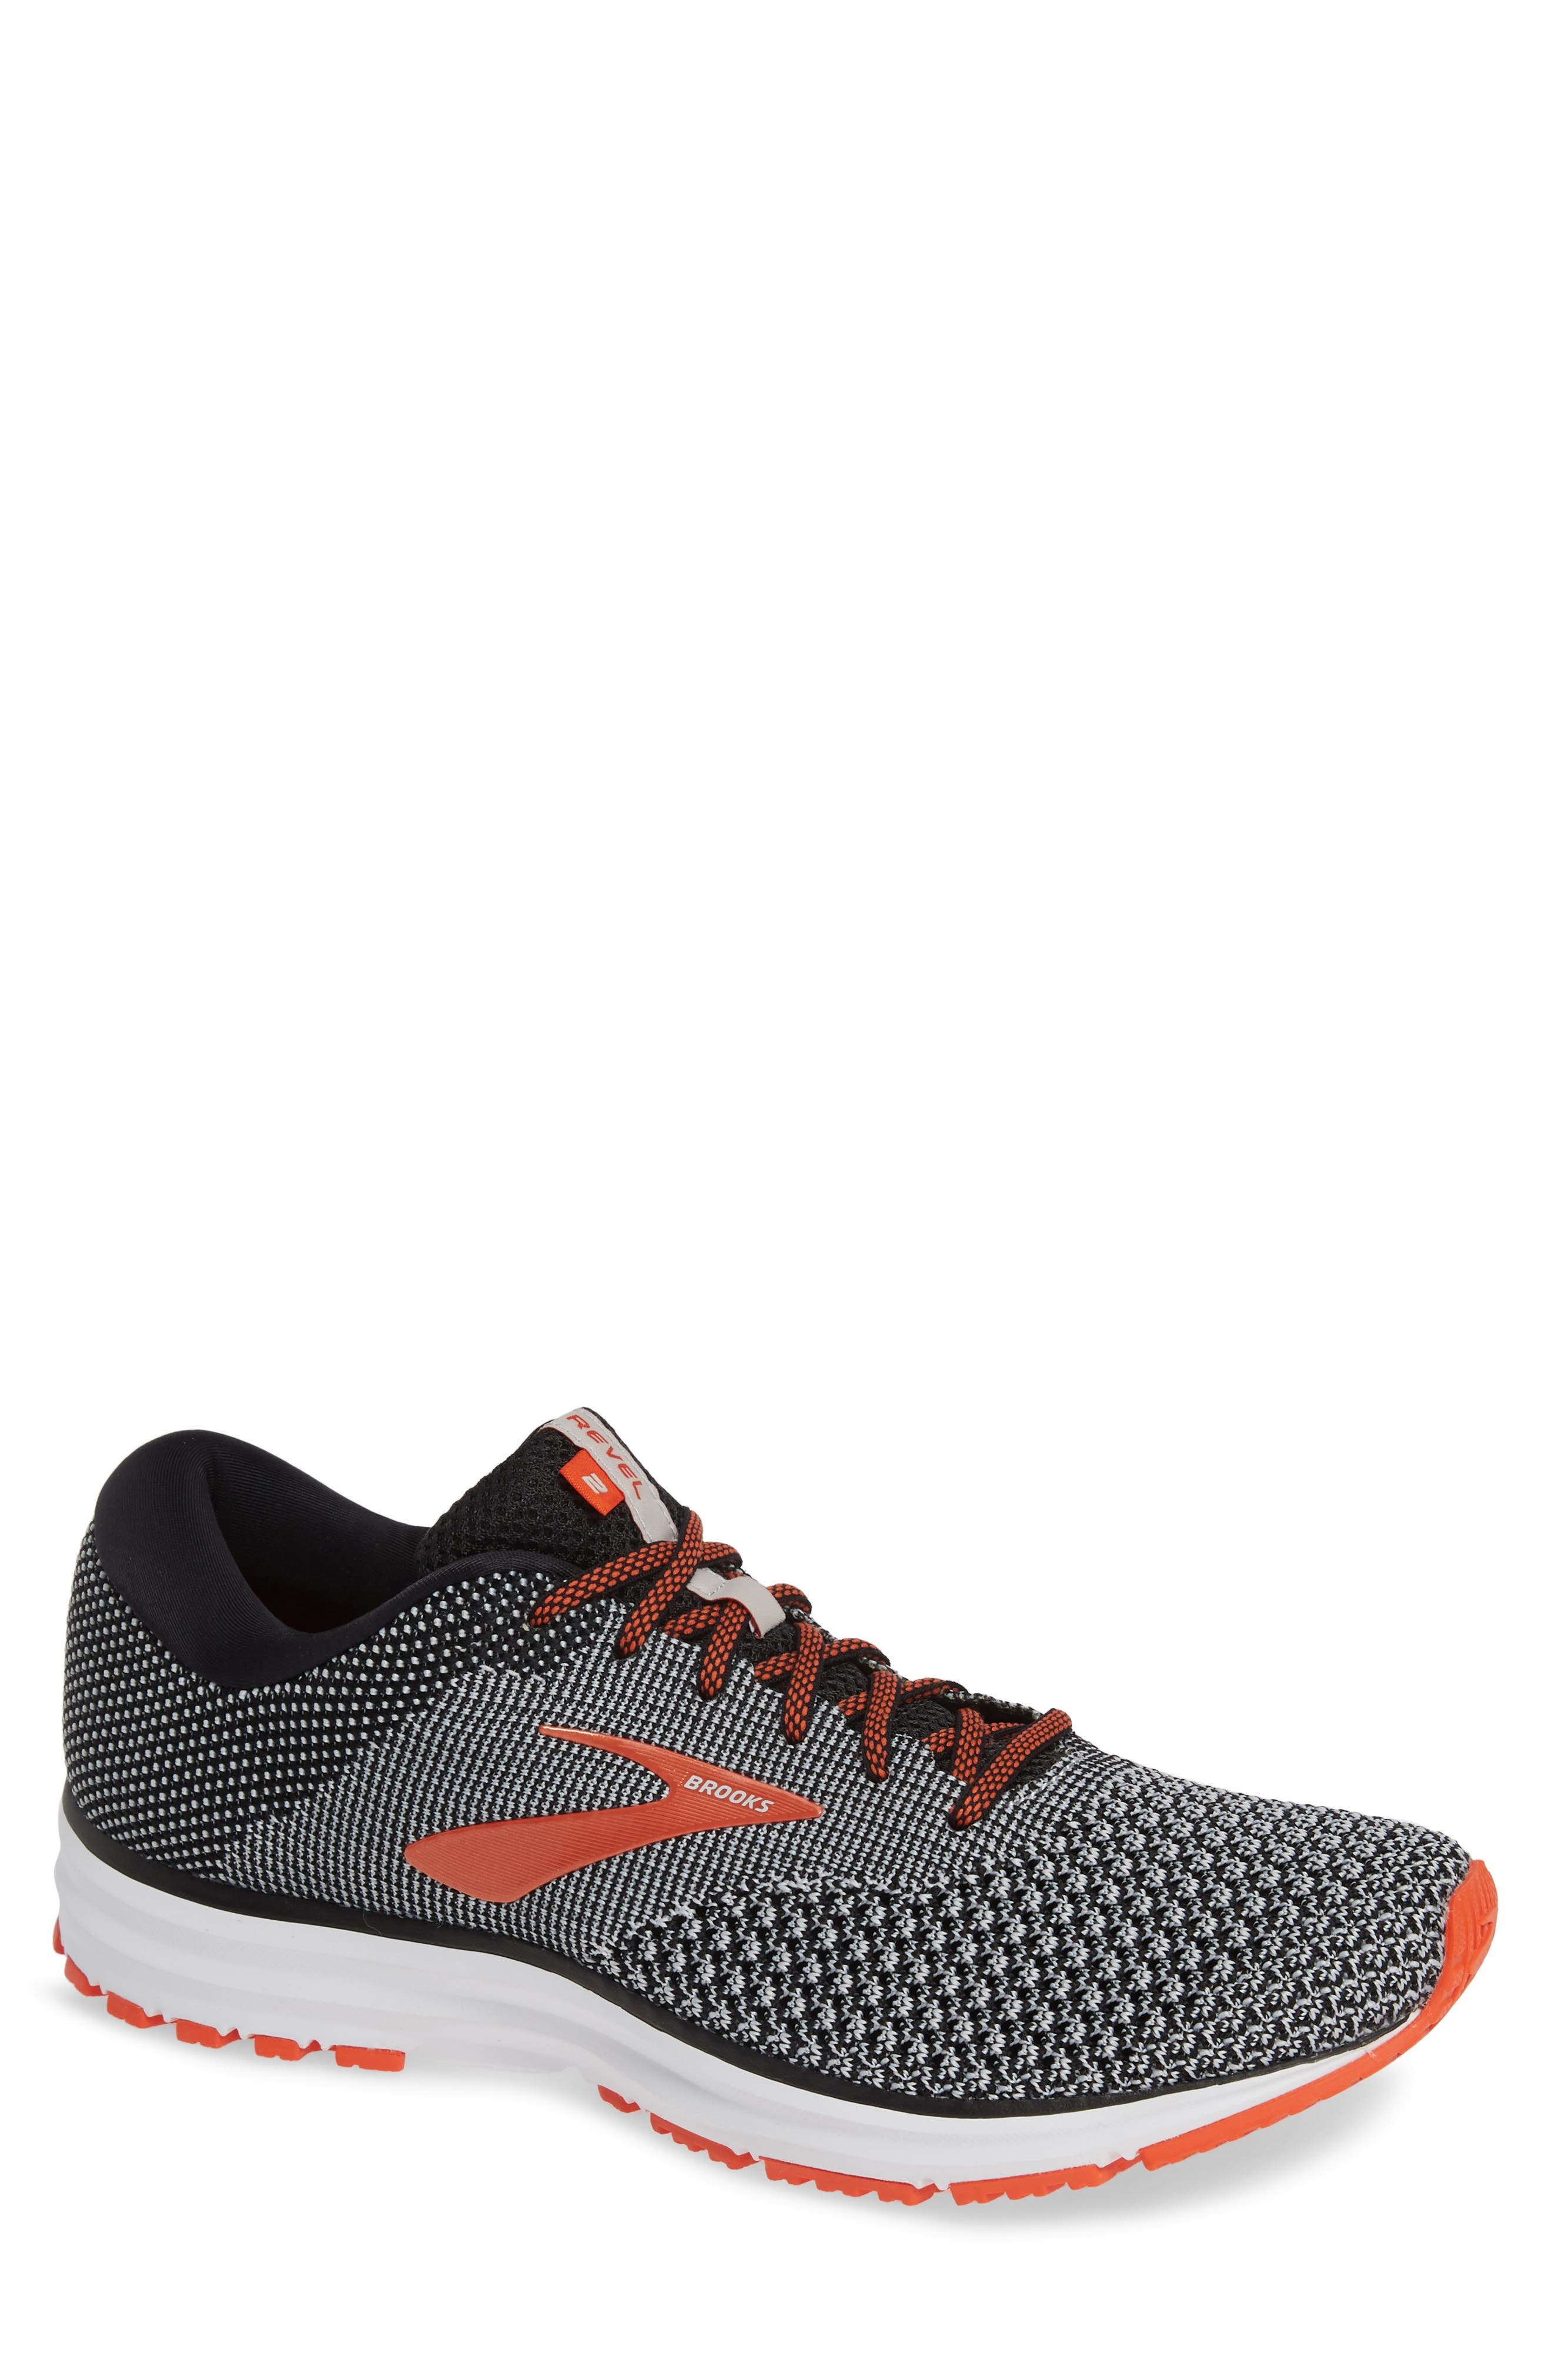 Revel 2 Running Shoe,                             Main thumbnail 1, color,                             BLACK/ LIGHT GREY/ ORANGE